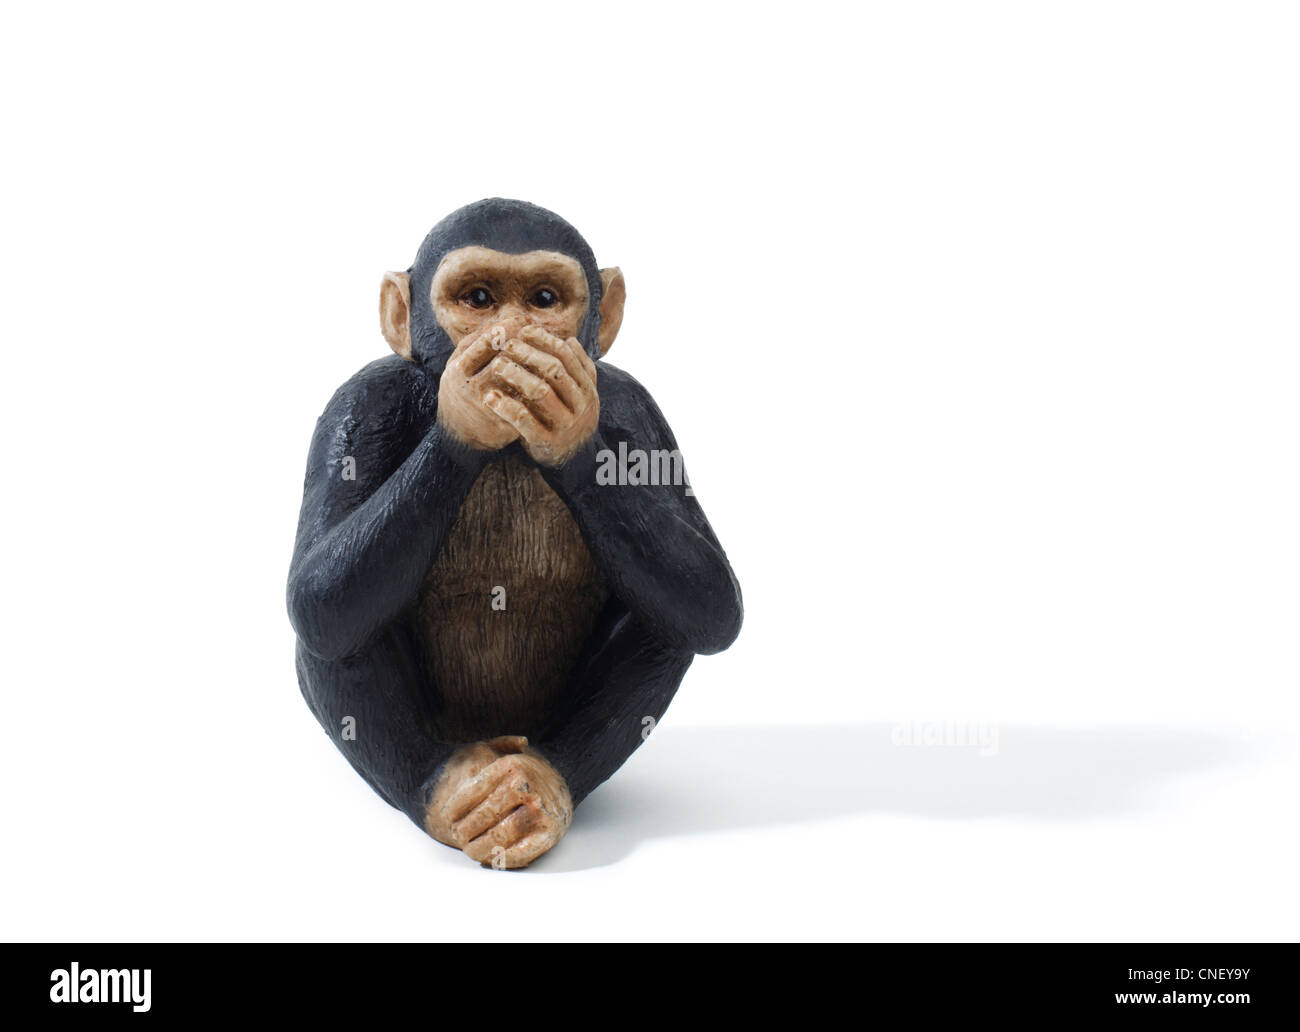 Studio shot of a toy monkey holding hands over mouth. speak no evil - Stock Image